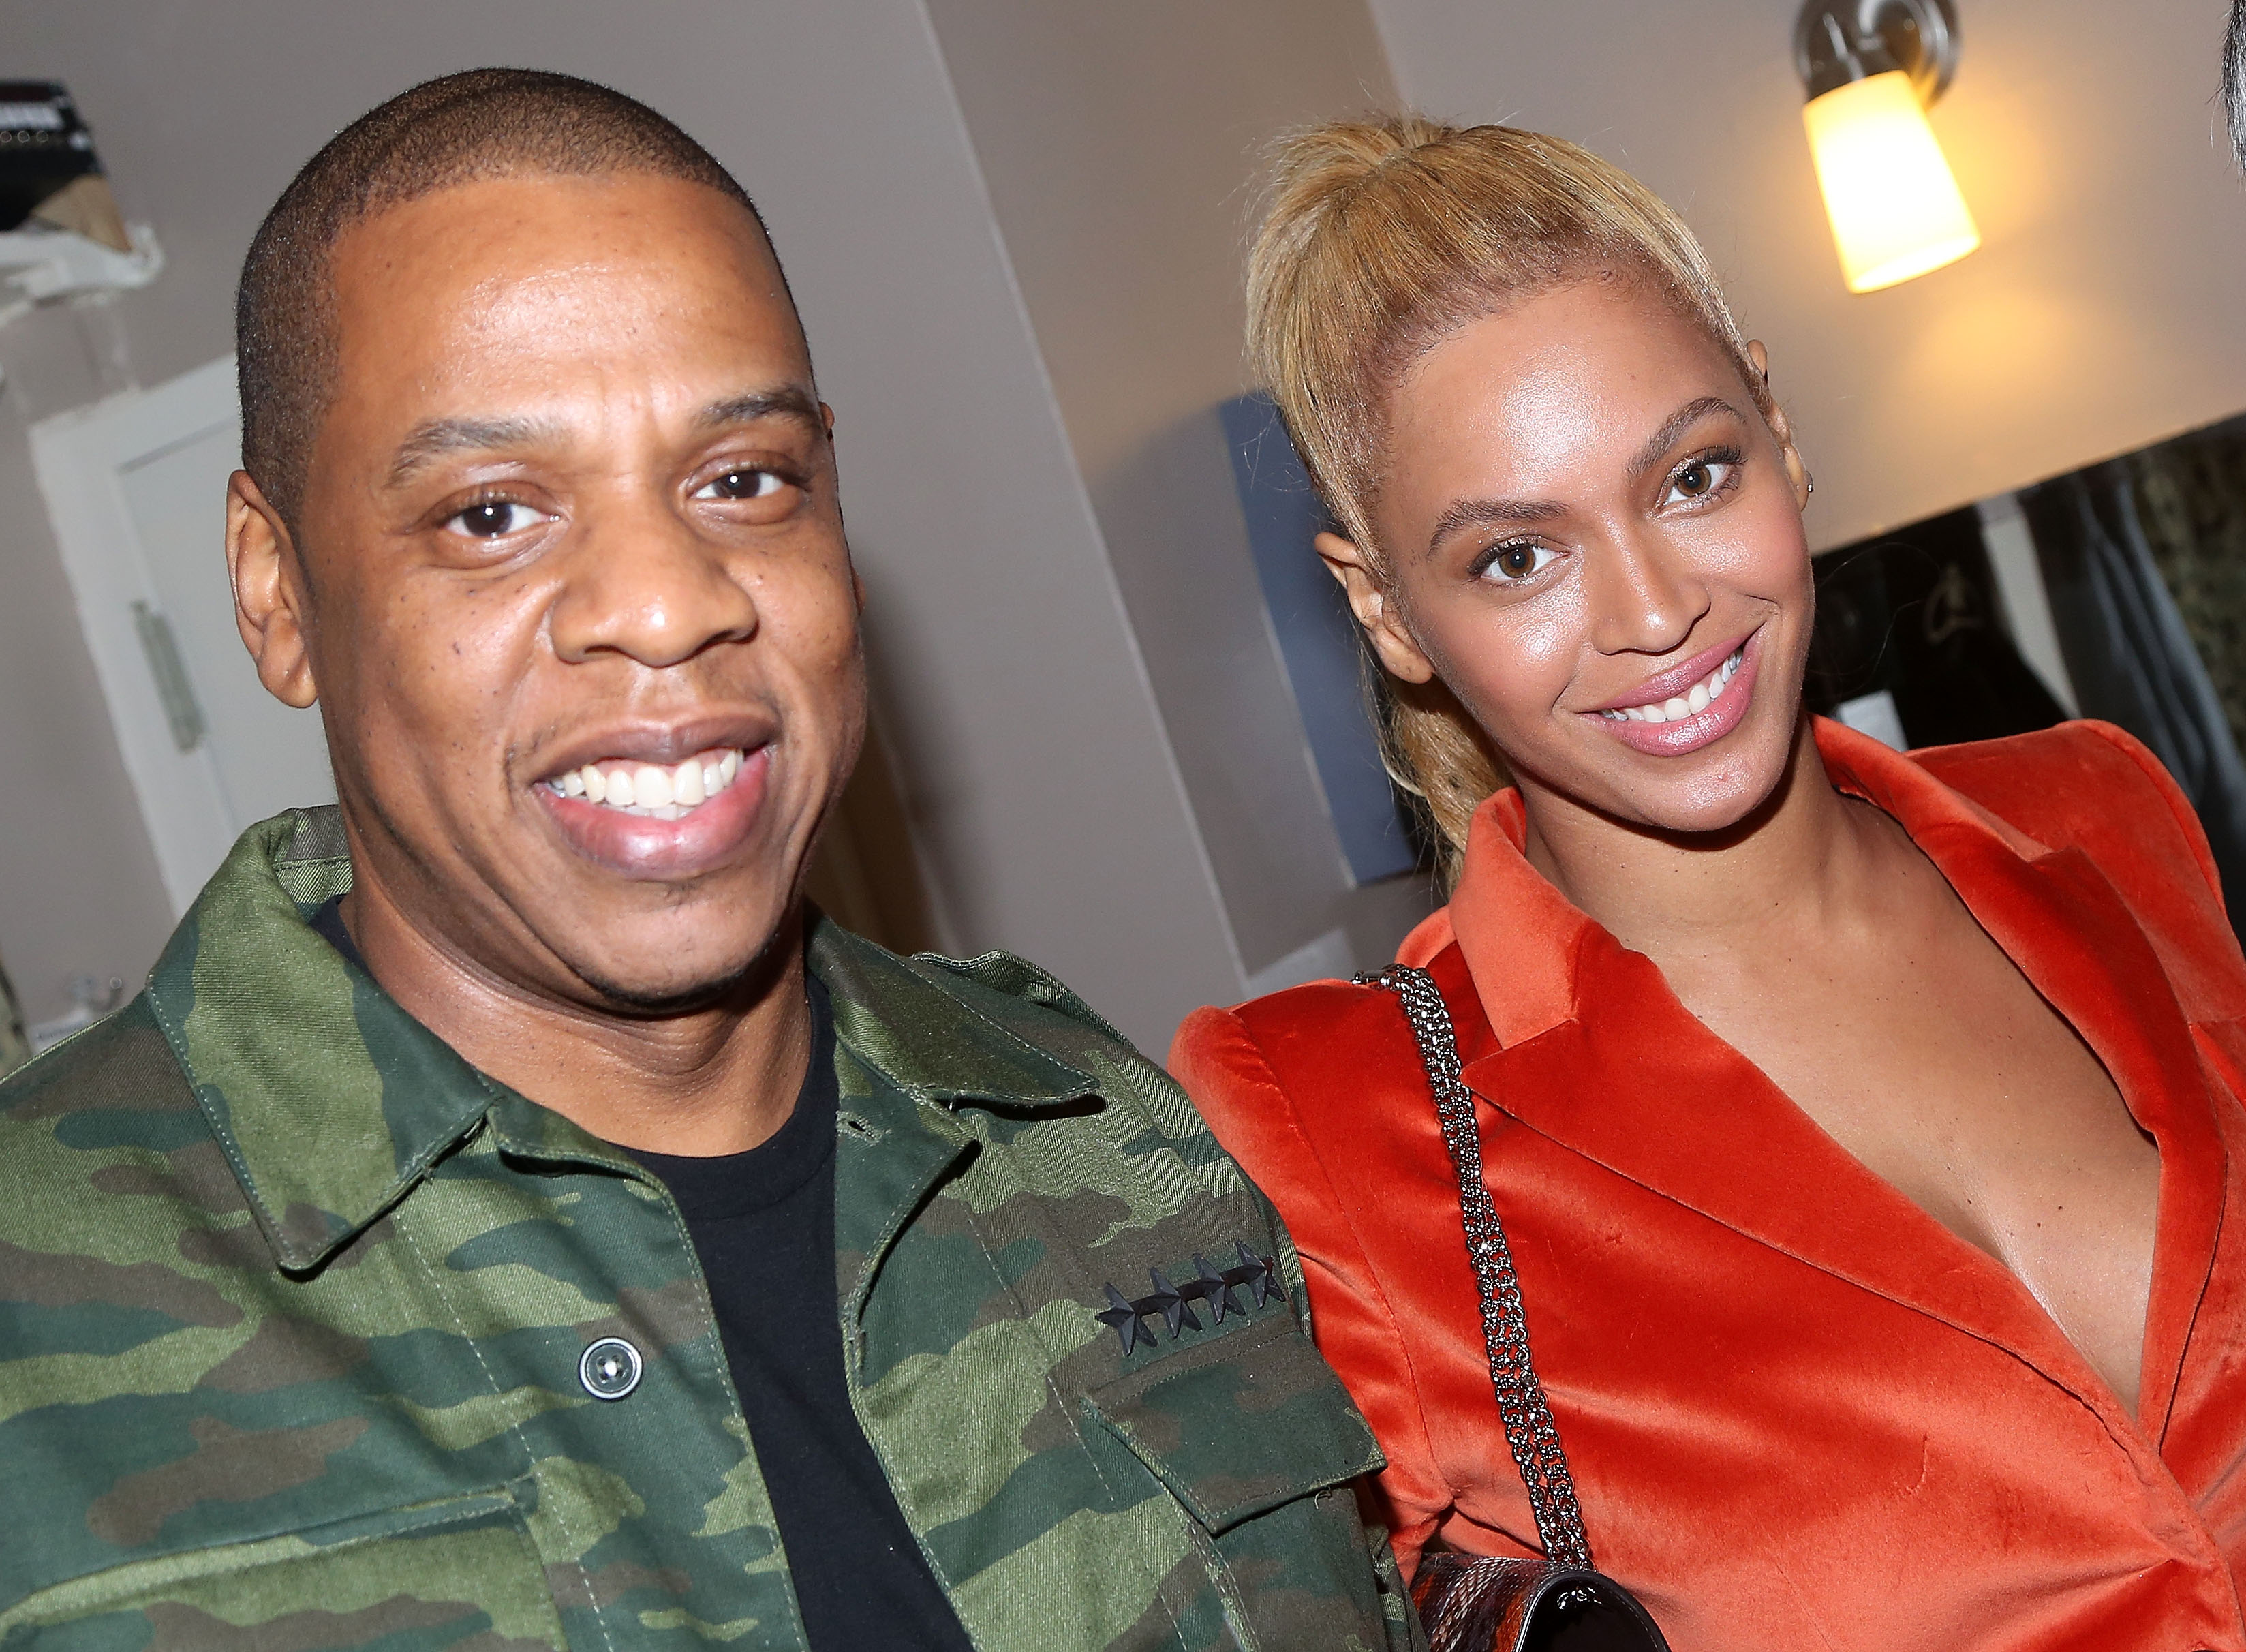 Jay Z was a common theme during last night's Emmys show, and he didn't even have to perform